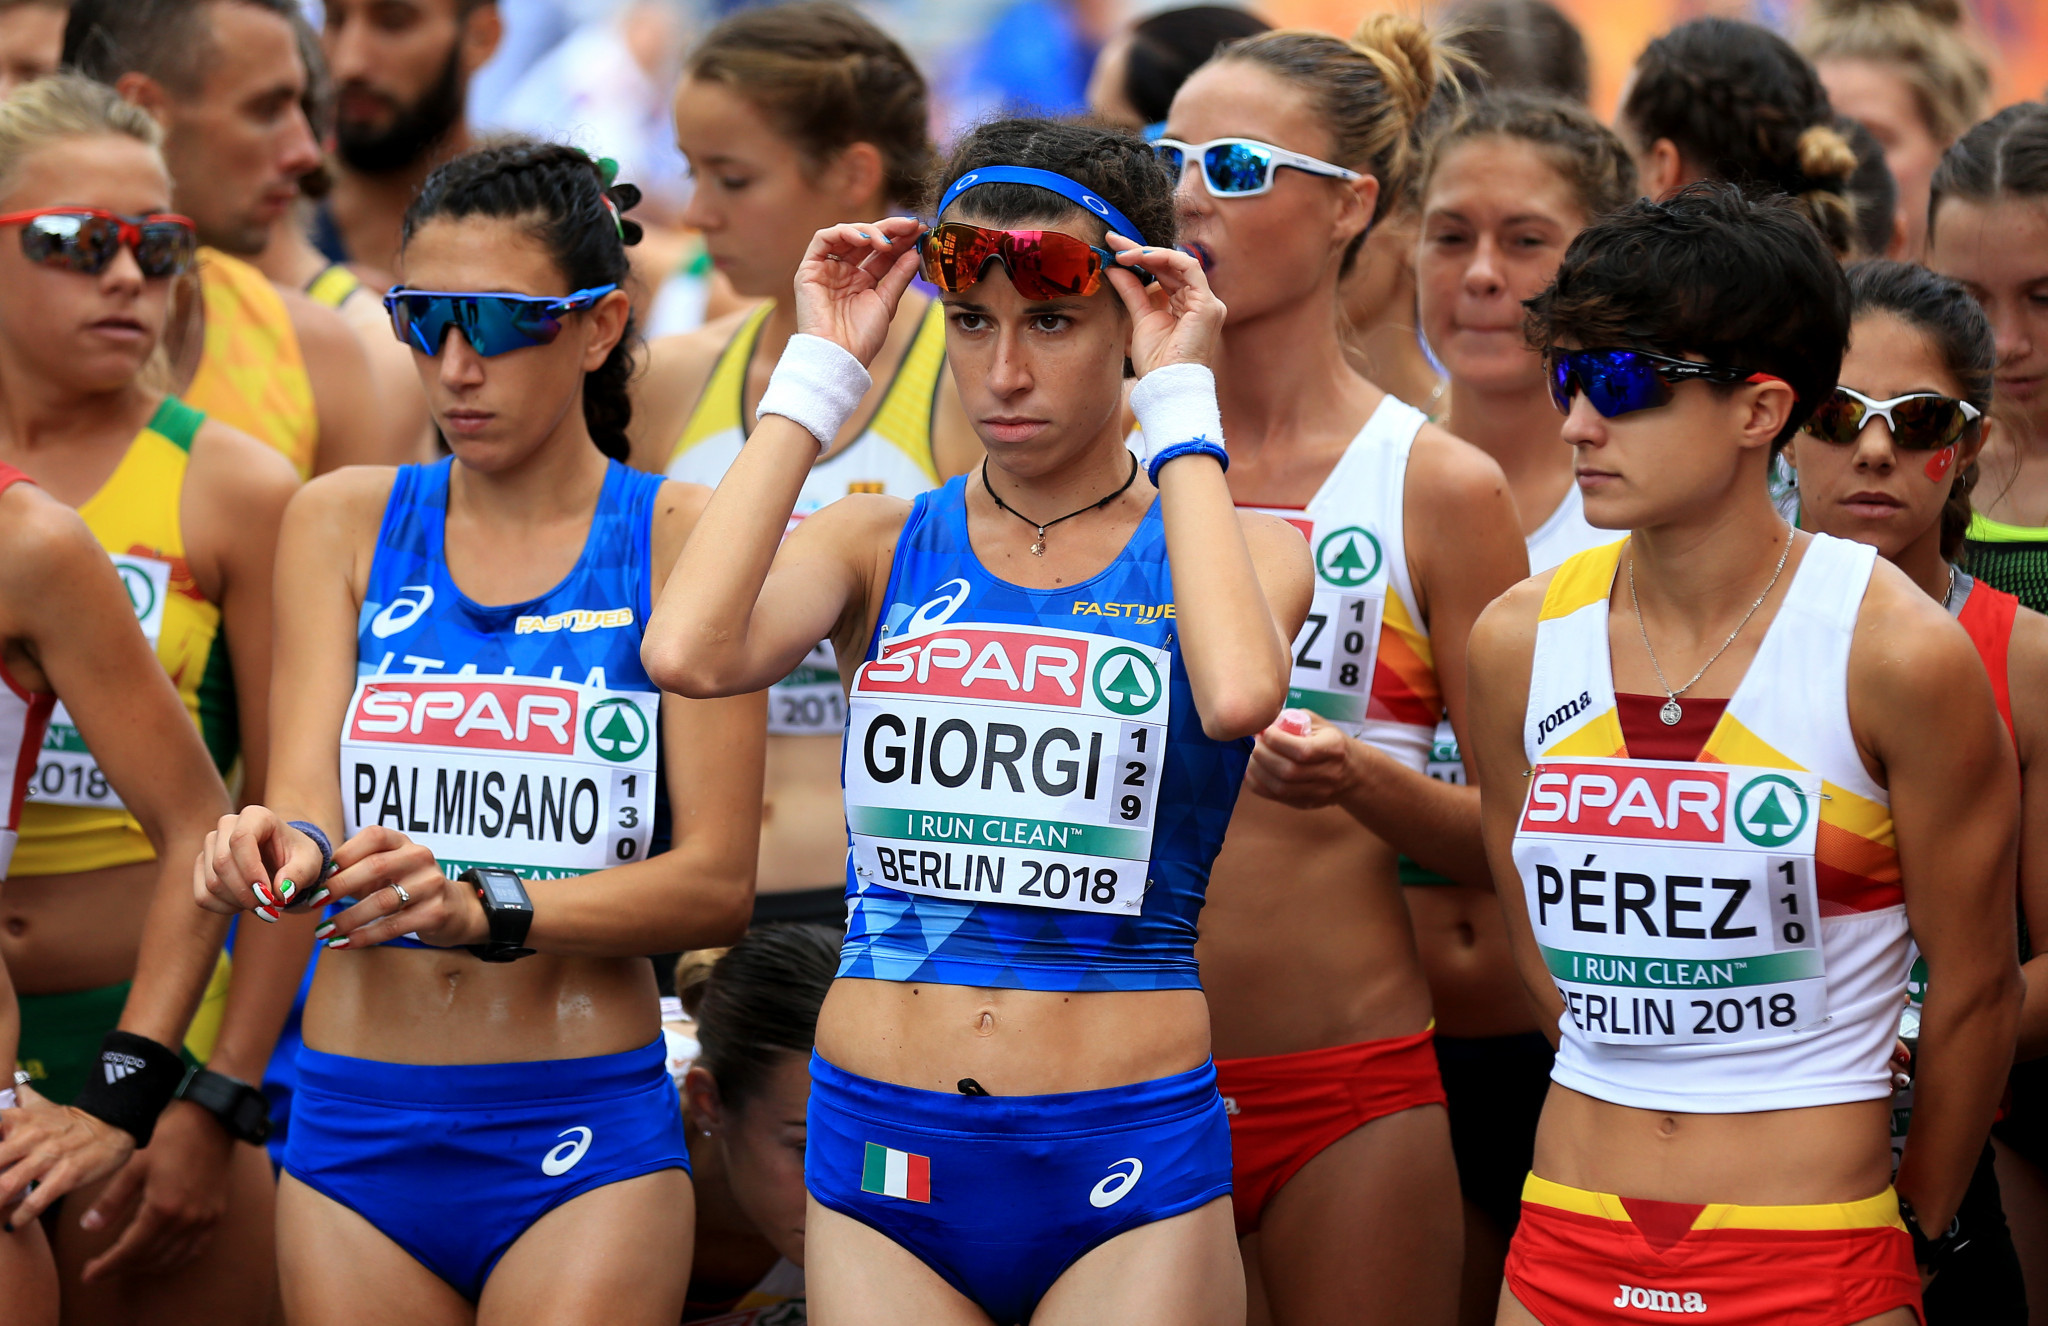 Italy's Eleonora Giorgi has her eyes on a 50km victory at the European Race Walking Cup in Lithuania tomorrow ©Getty Images